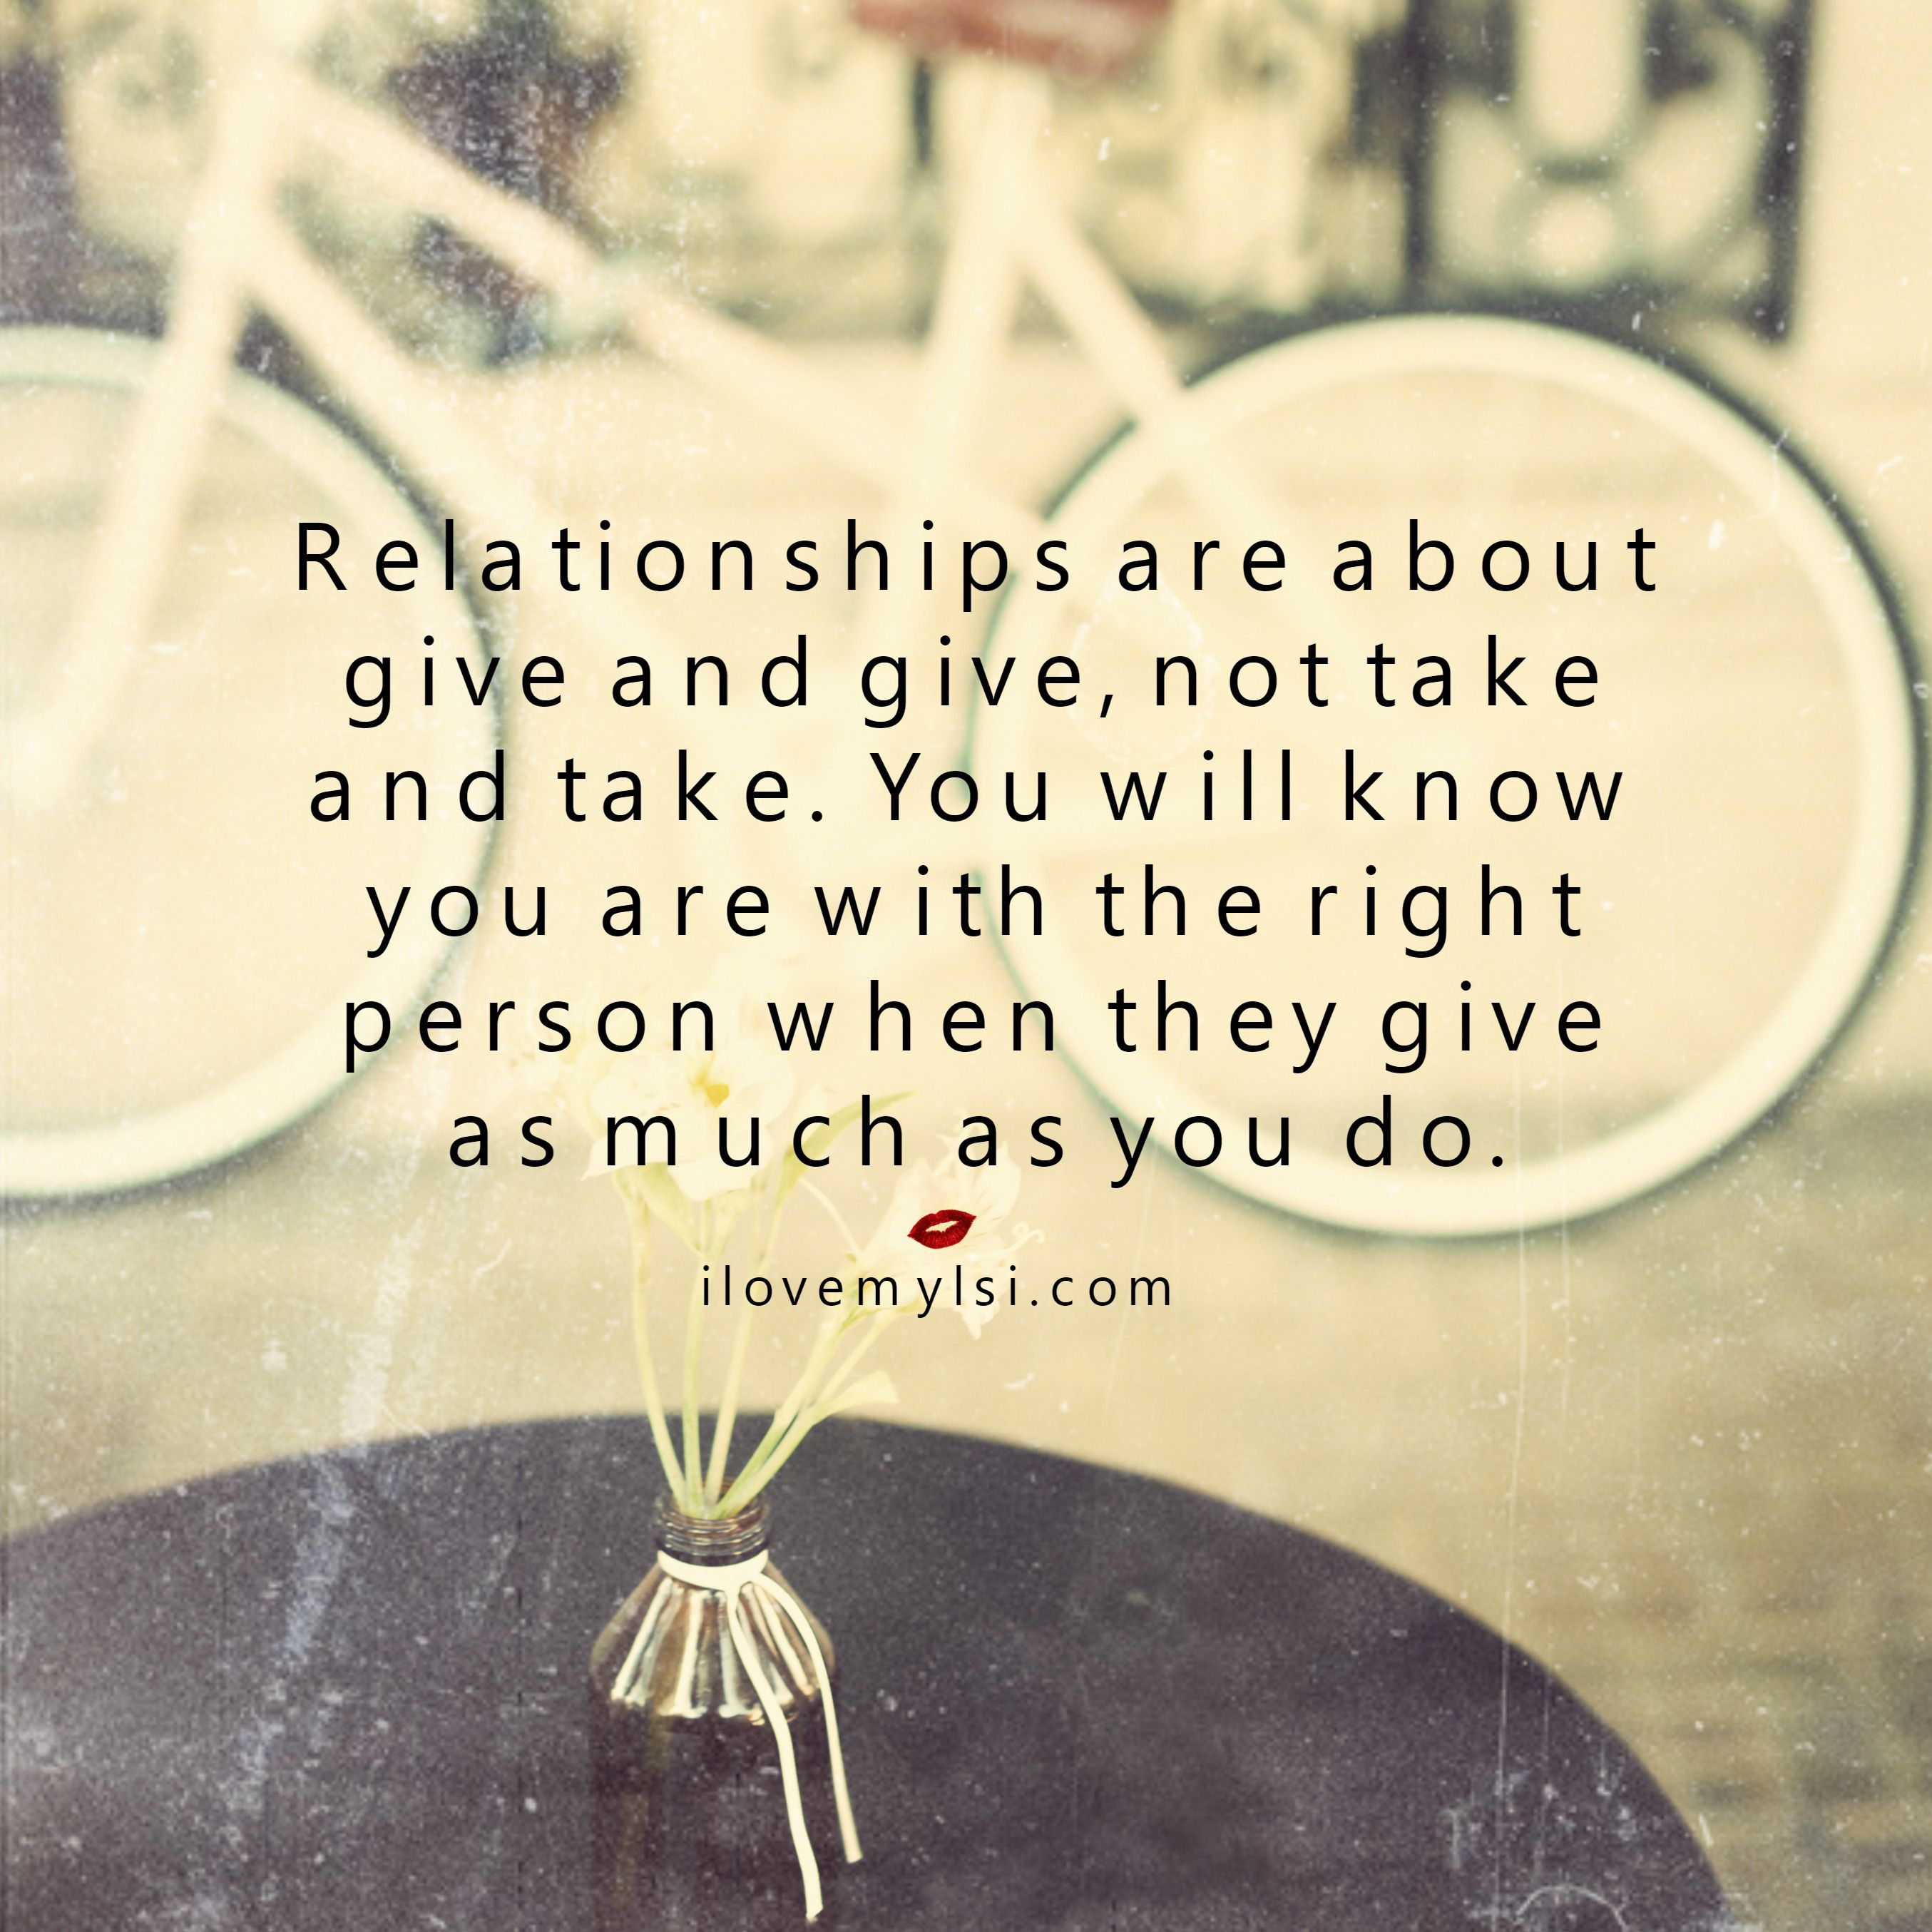 give and take relationship tumblr pictures